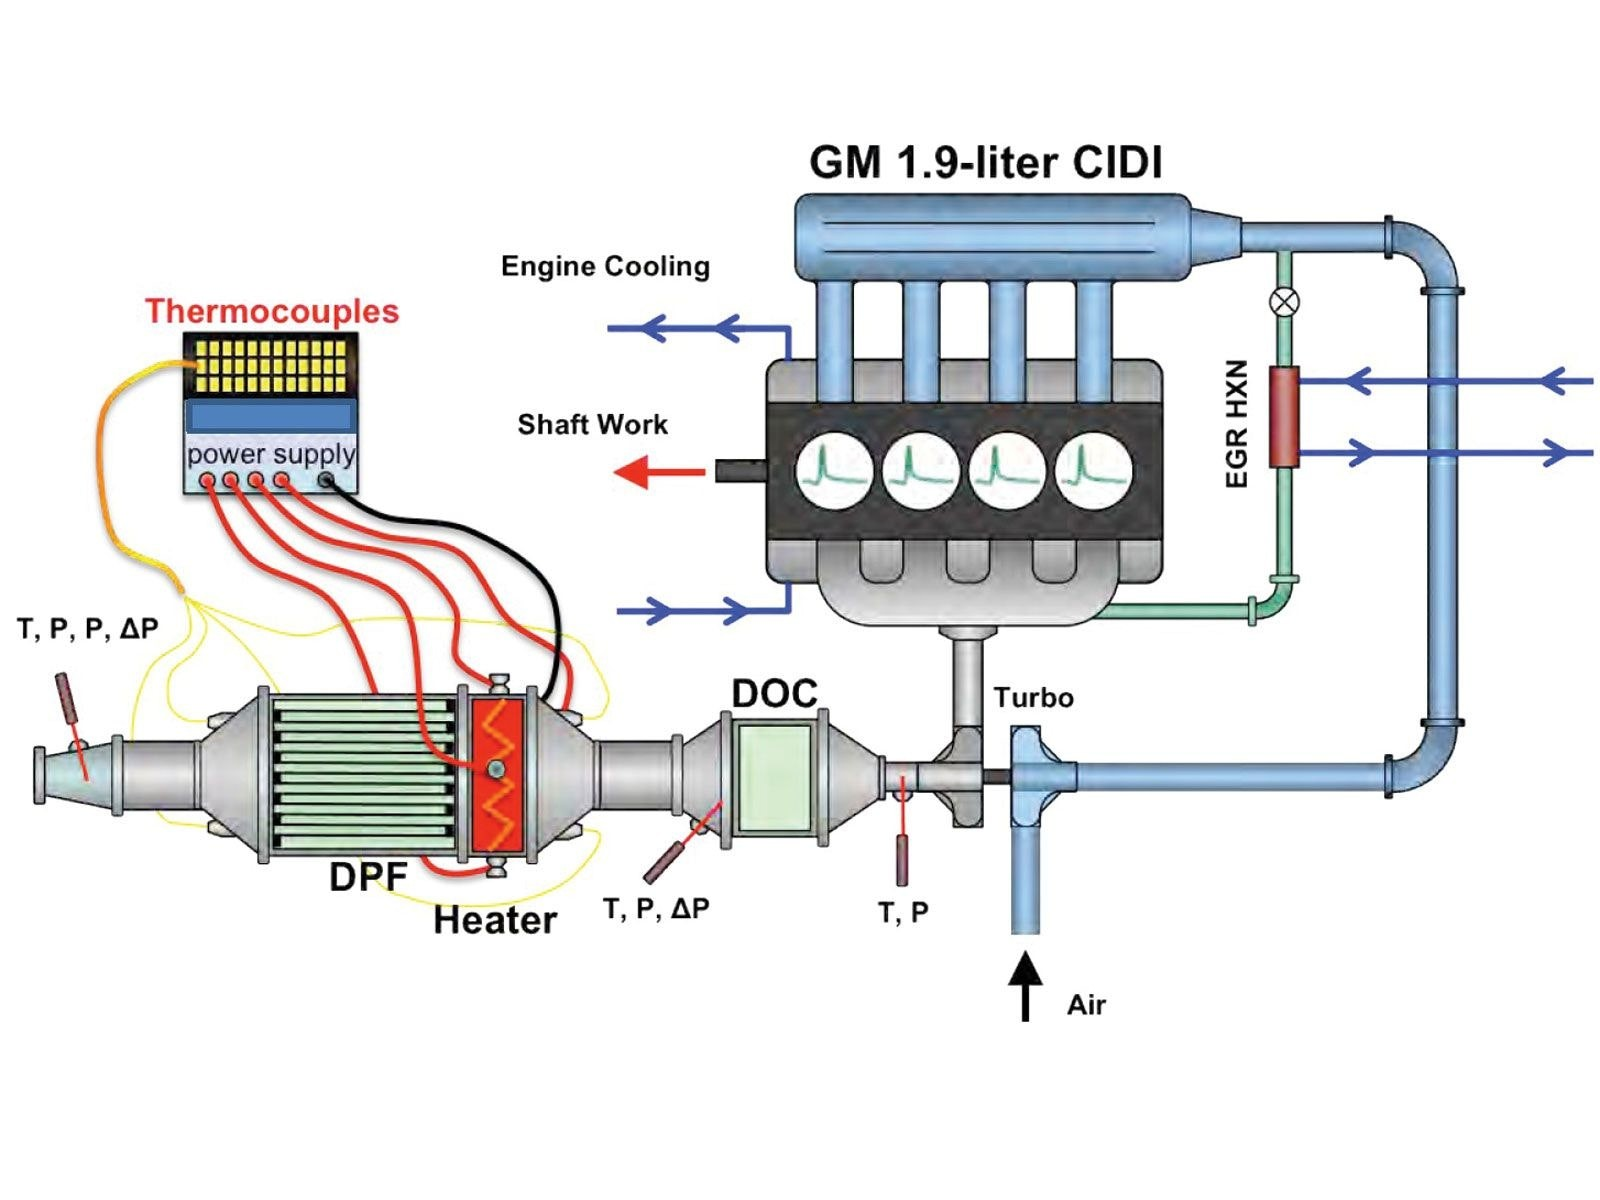 Diesel Engine Diagram Labeled Diesel Engine Diagram Four Cylinder Wiring Of A Motor for Tachometer Of Diesel Engine Diagram Labeled